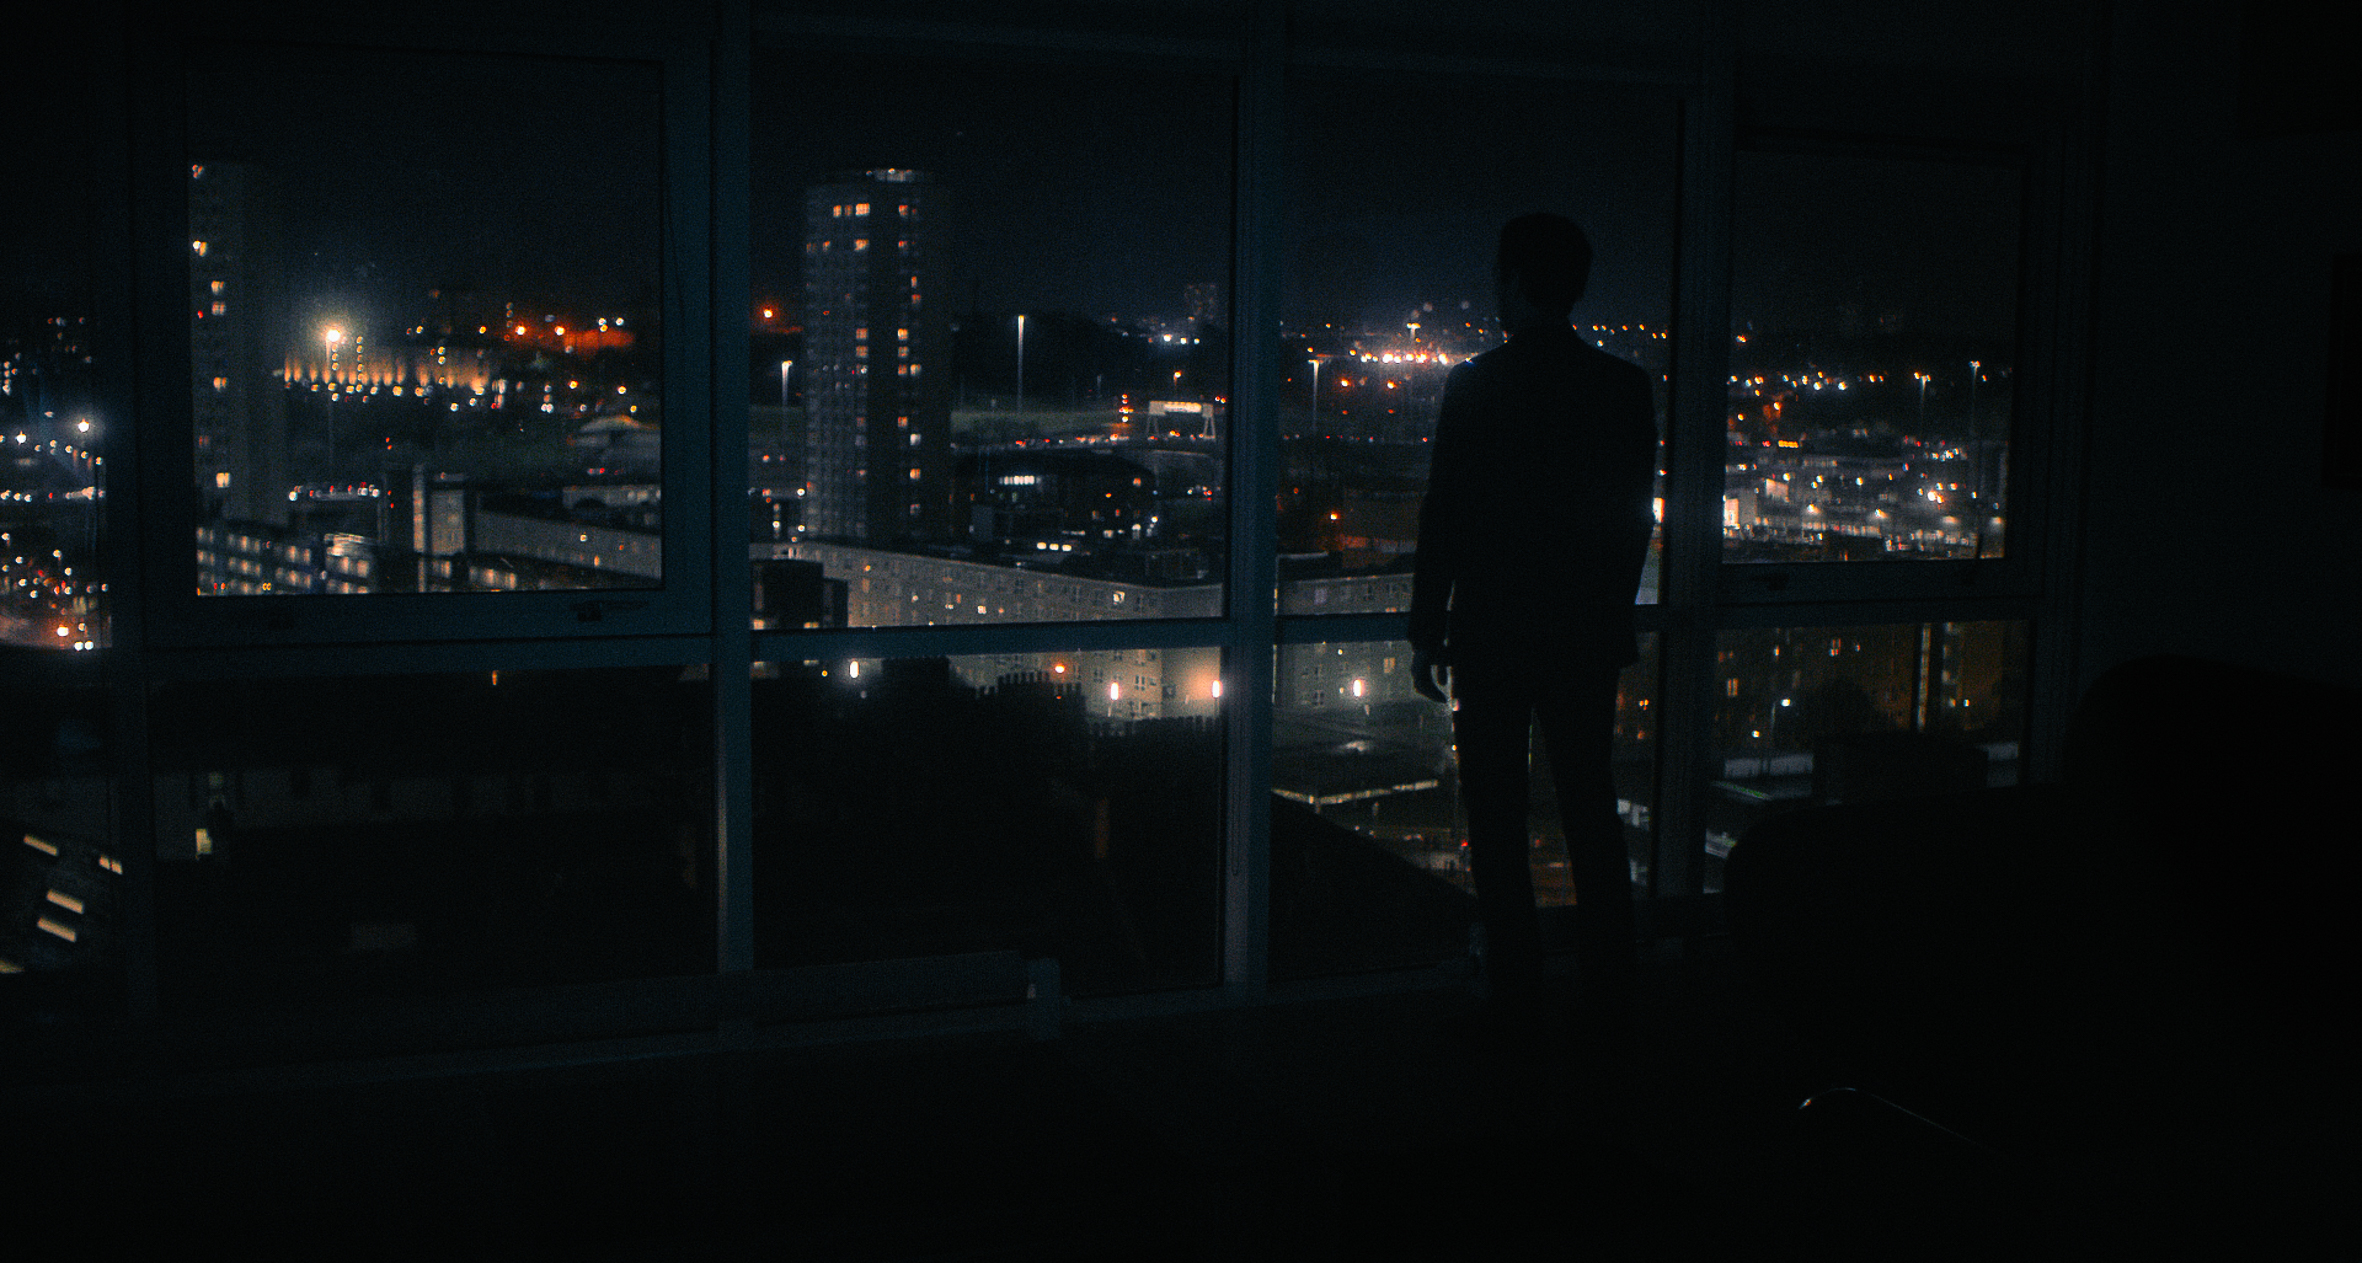 MY LONELINESS IS KILLING ME - JACK AGAINST THE CITYSCAPE.jpg